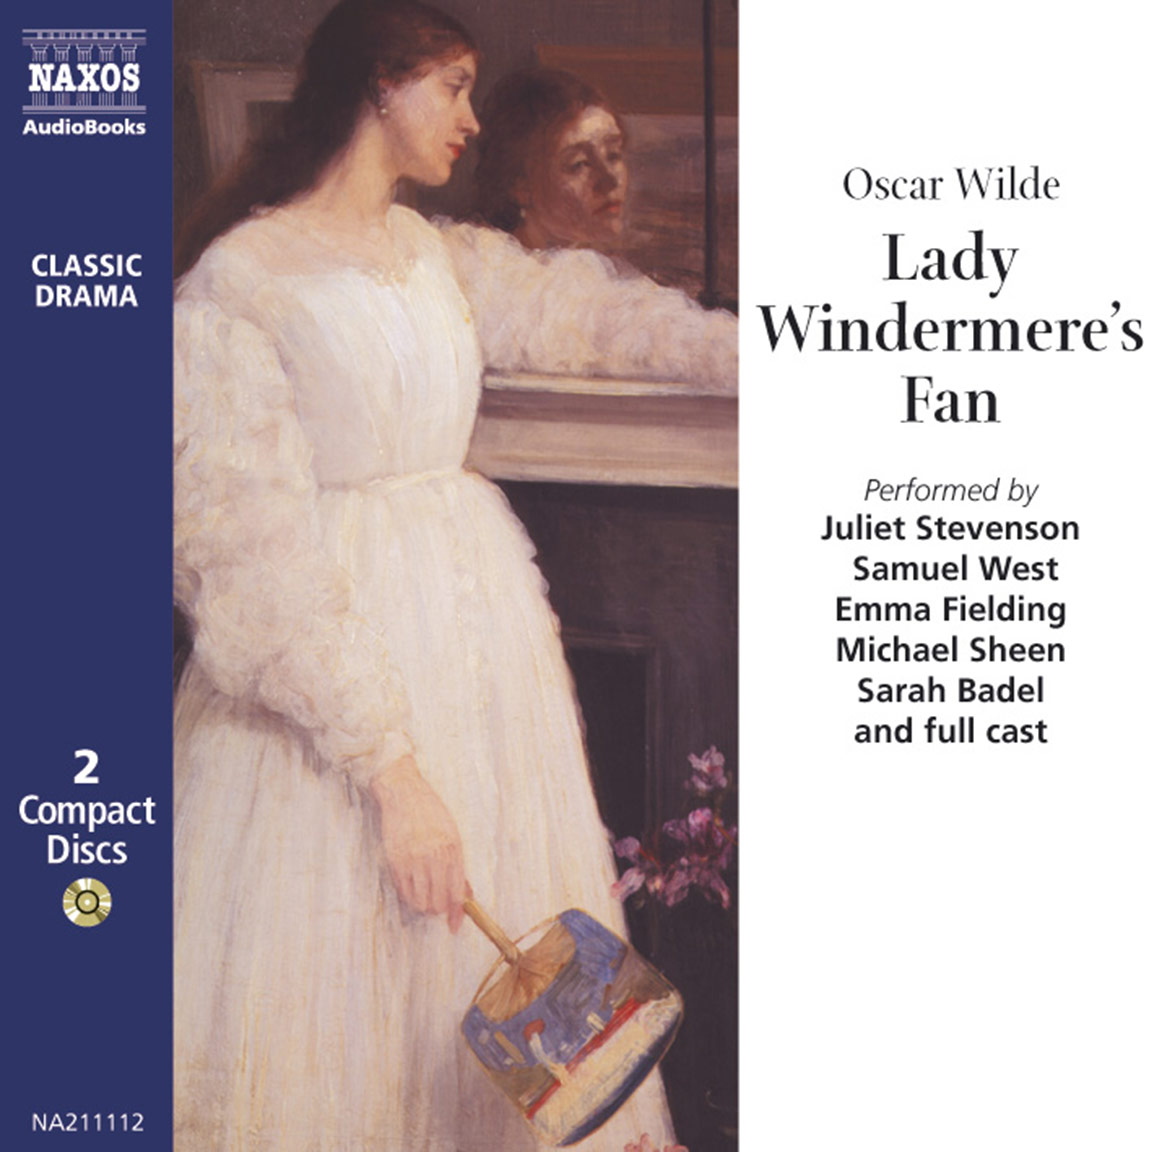 the characters in lady windermeres fan by oscar wilde Order our lady windermere's fan study guide oscar wilde this study guide consists of approximately 48 pages of chapter summaries, quotes, character analysis, themes, and more - everything you need to sharpen your knowledge of lady windermere's fan.